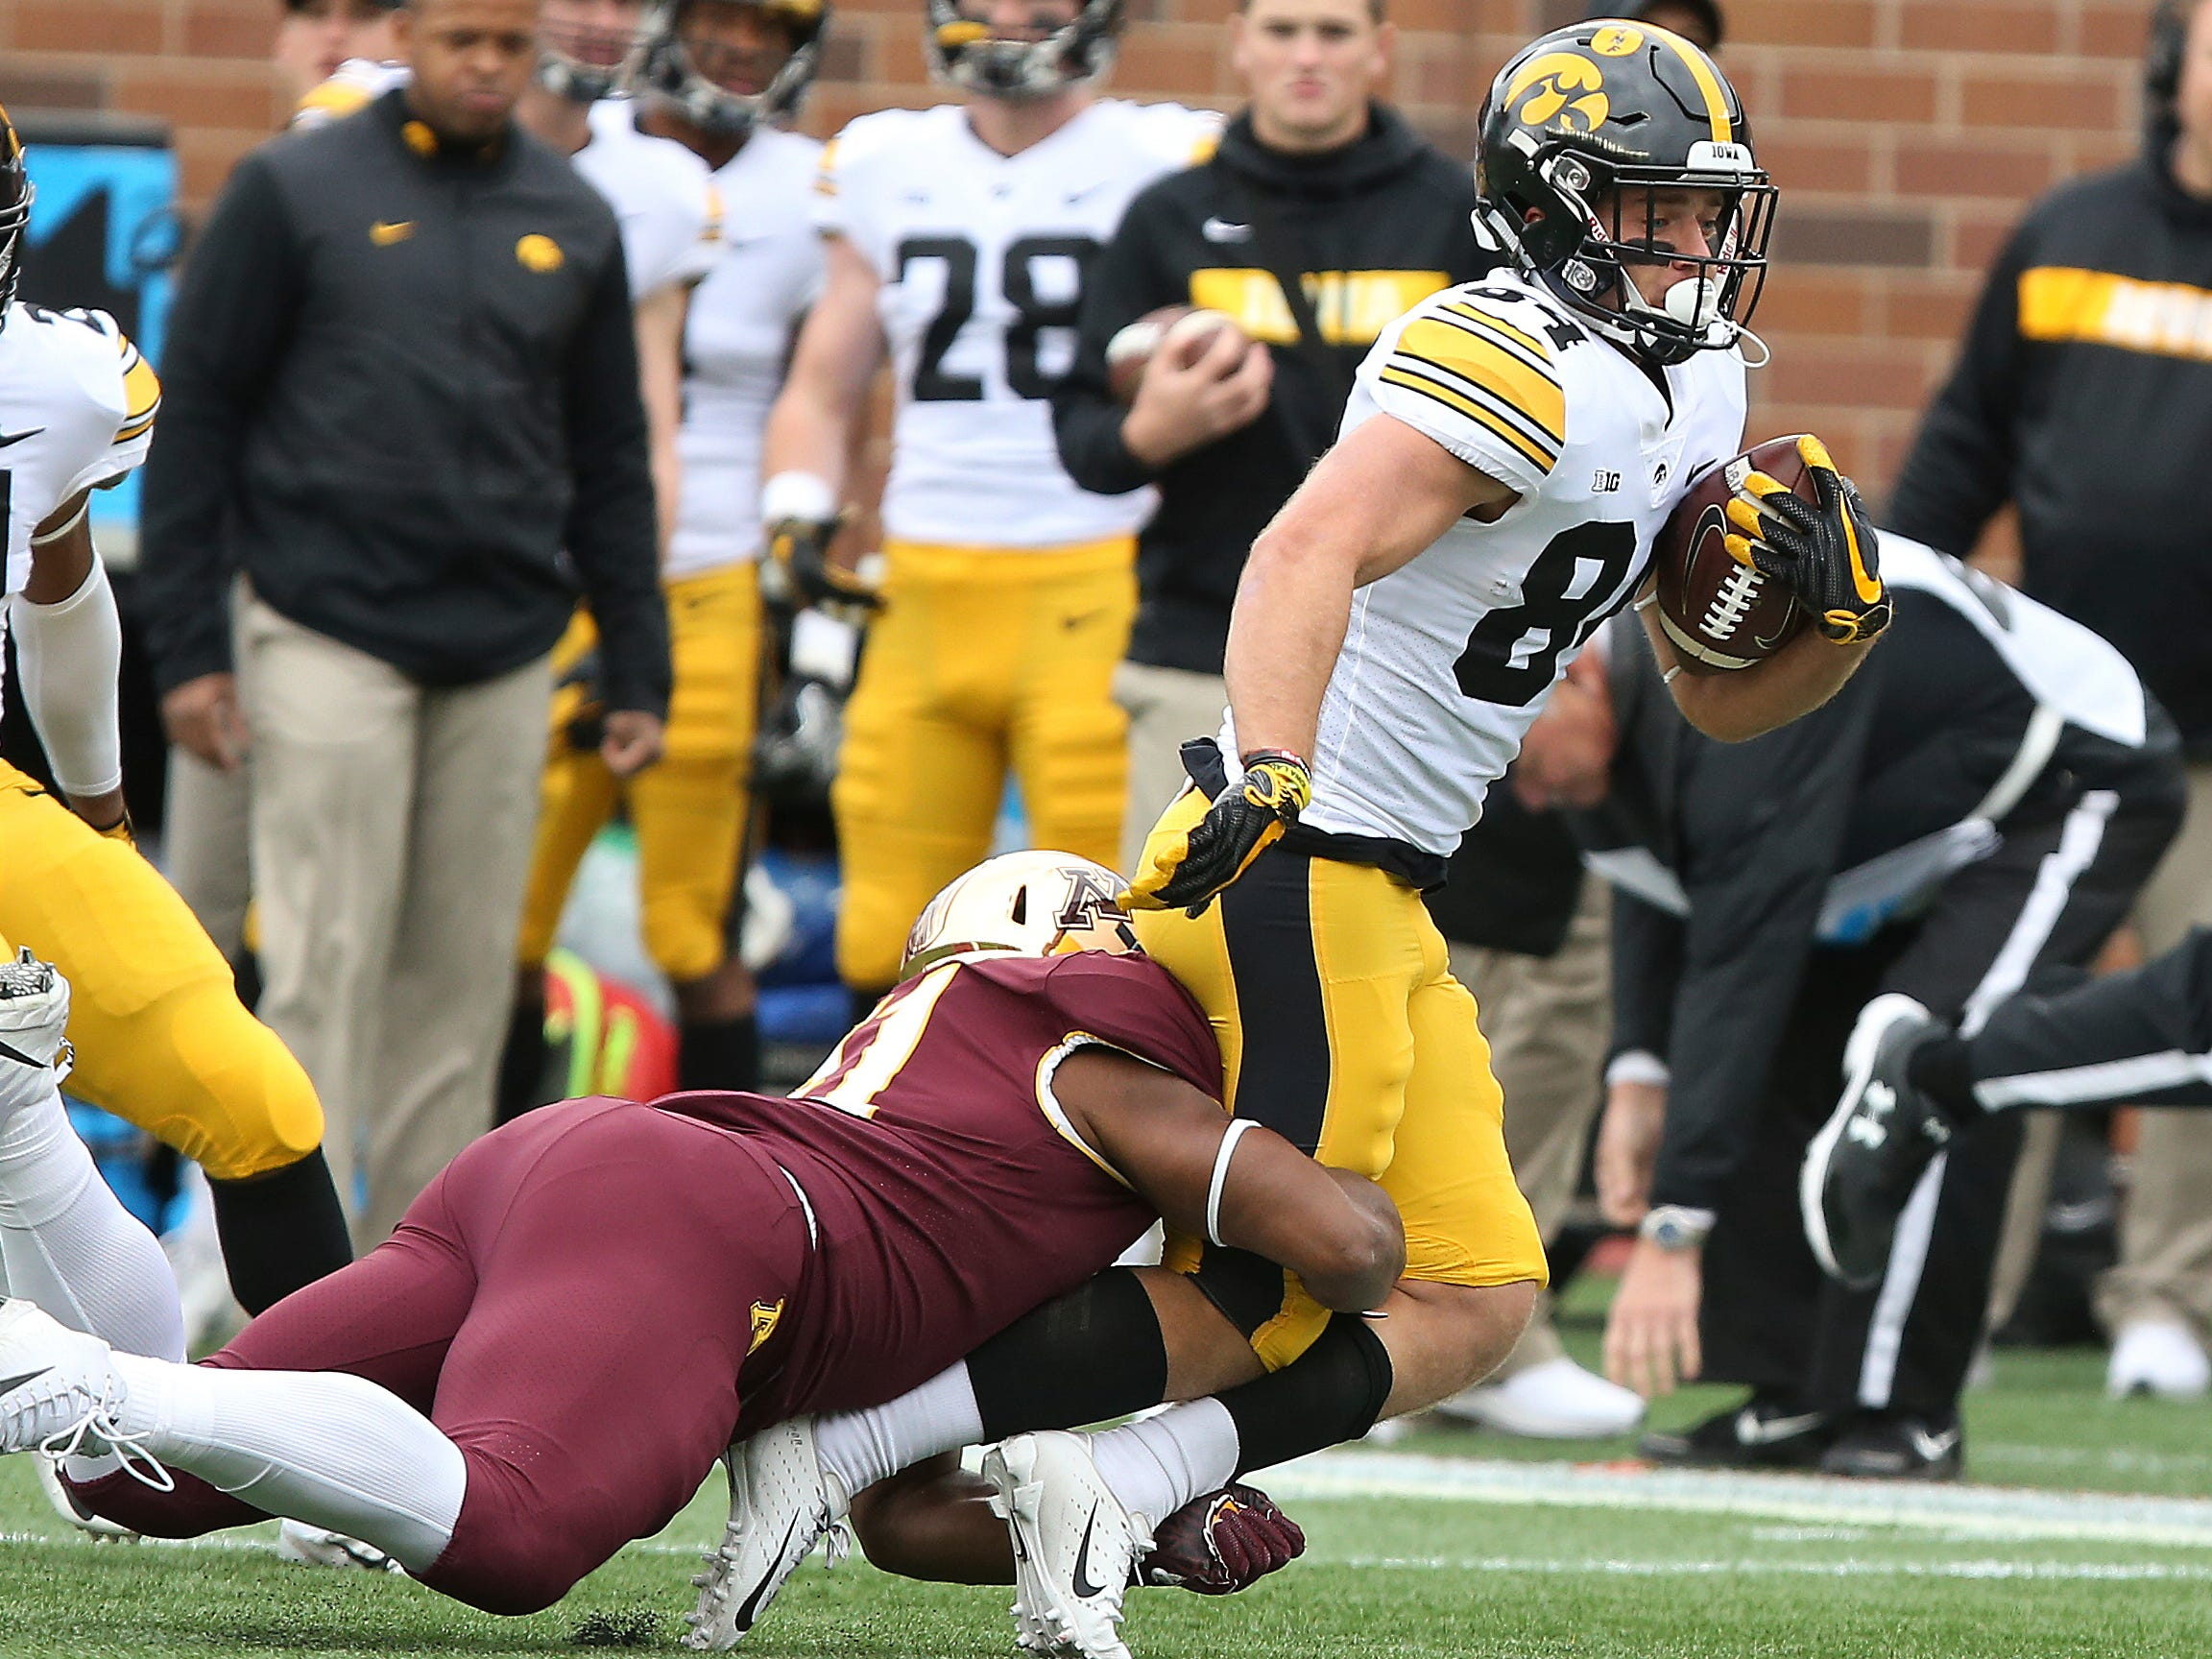 Iowa wide receiver Nick Easley controls the ball against Minnesota's Thomas Barber during an NCAA college football game Saturday, Oct. 6, 2018, in Minneapolis. (AP Photo/Stacy Bengs)